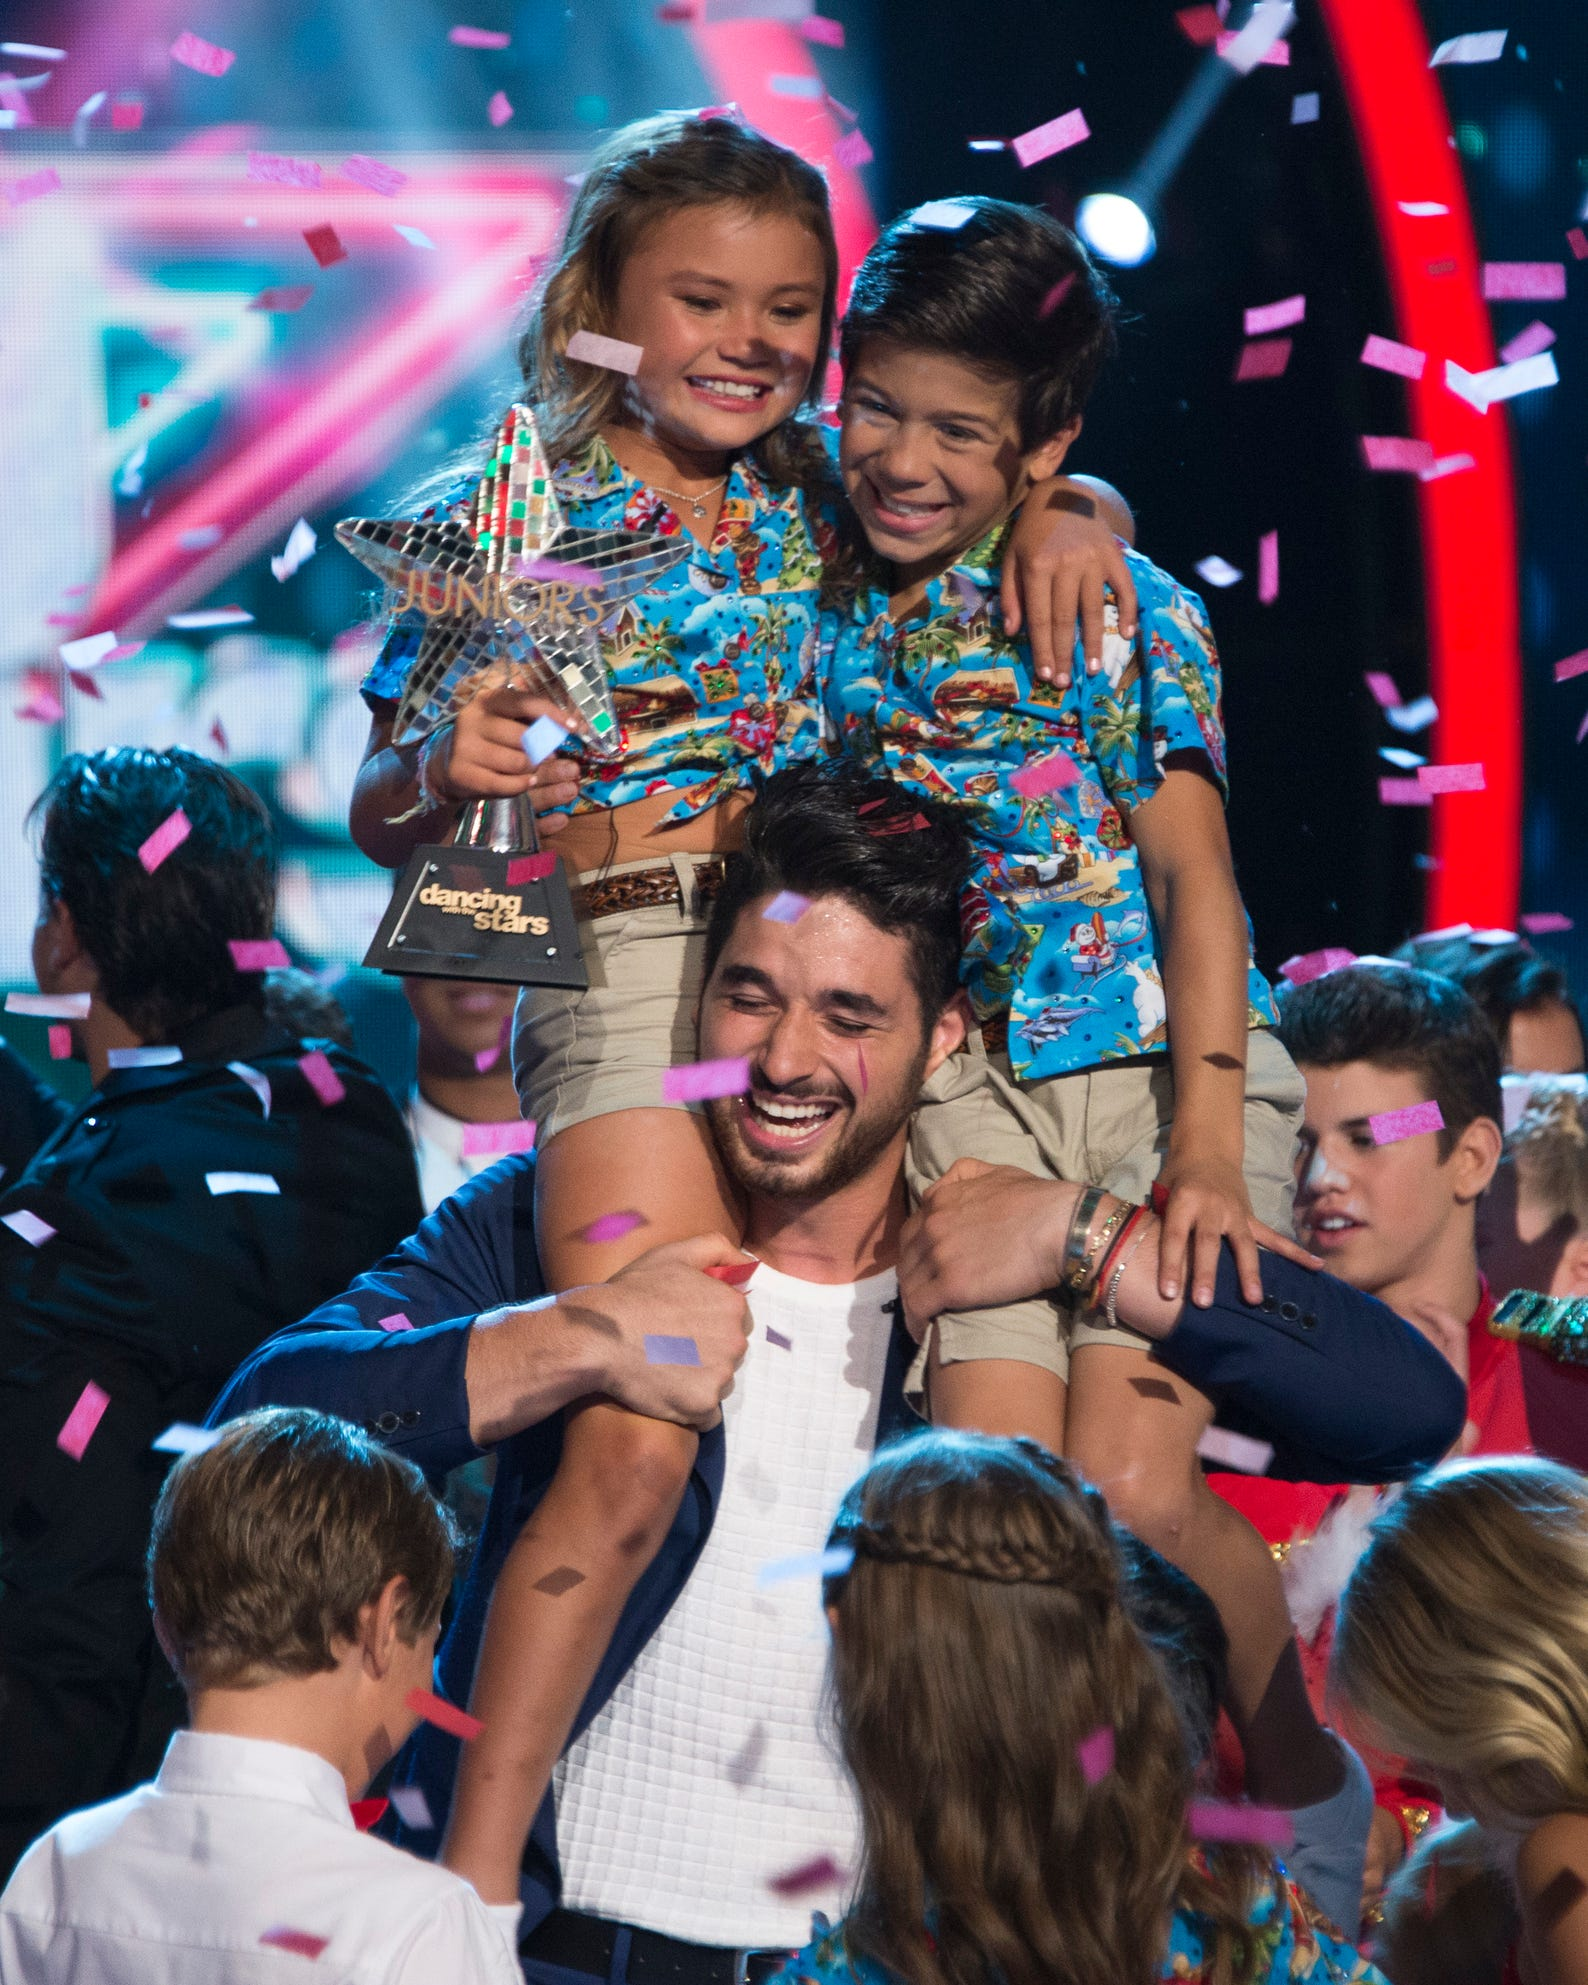 Dancing with the Stars: Juniors' winners are Sky Brown and